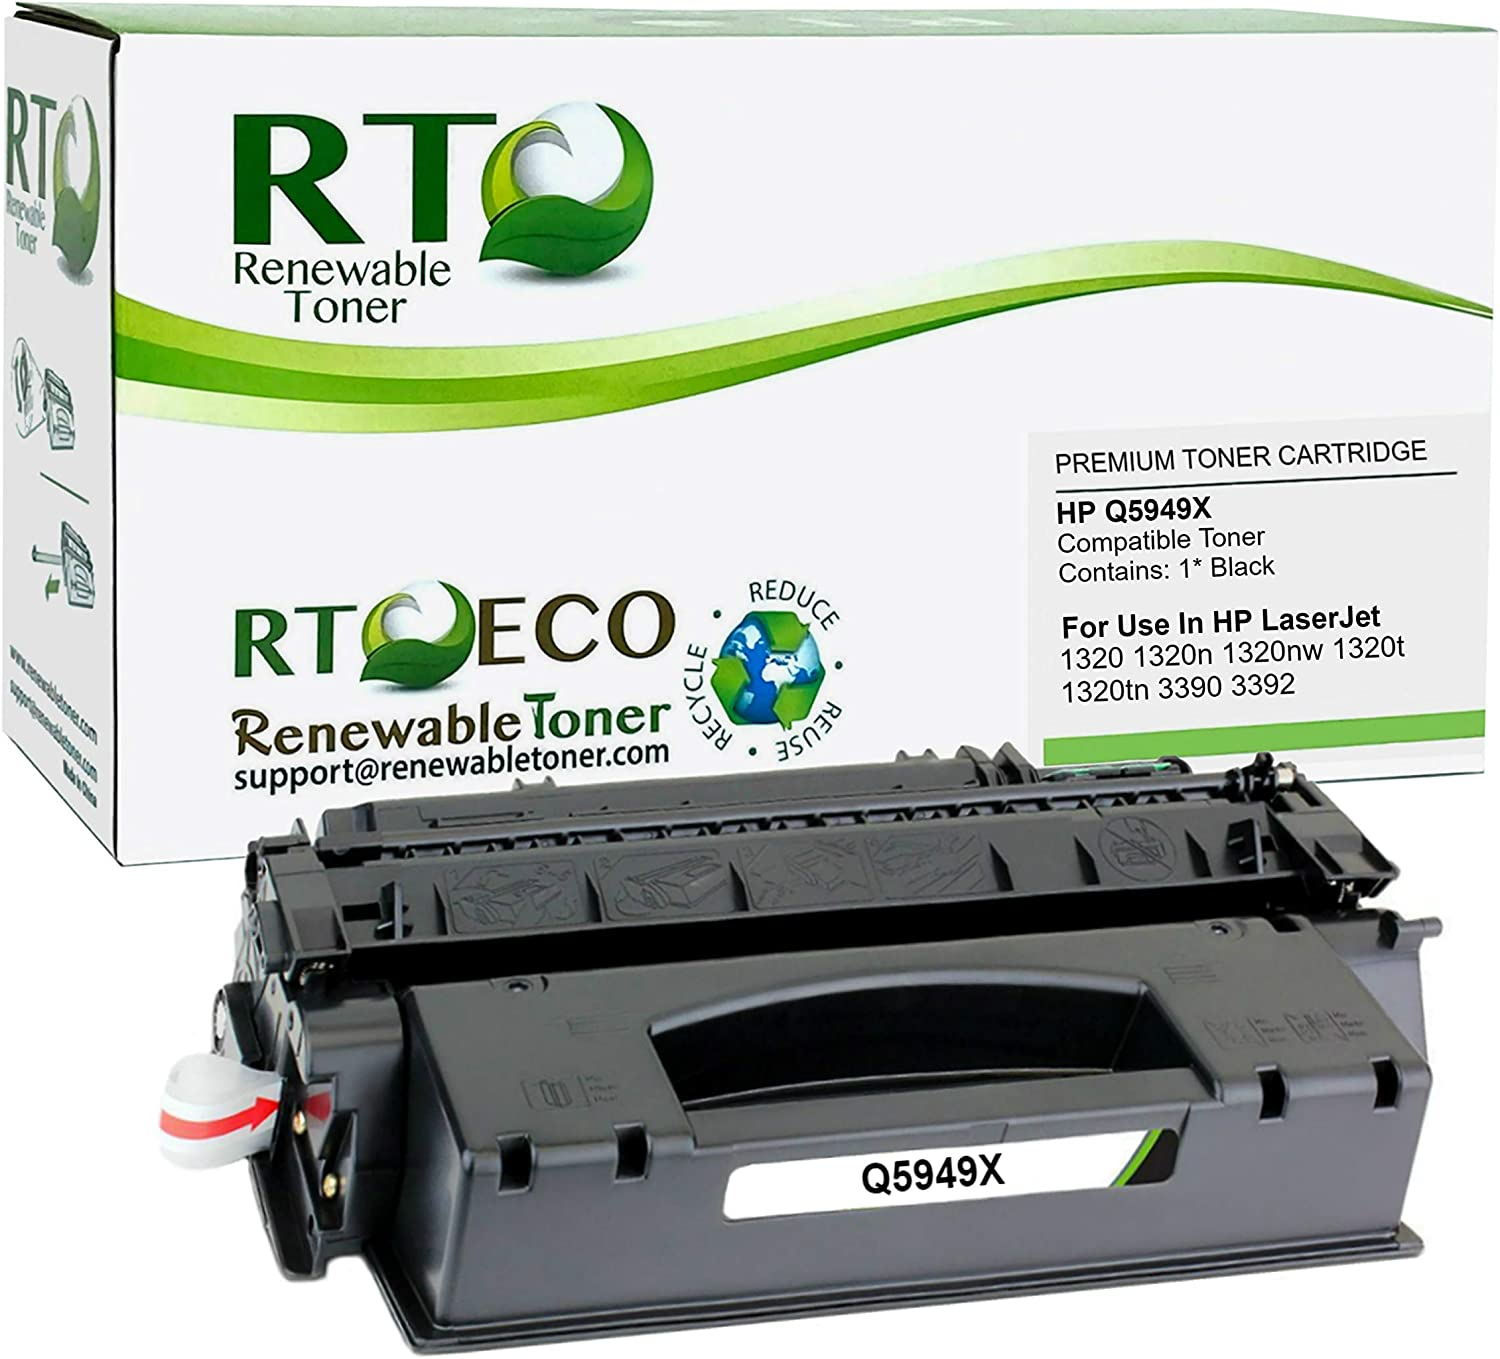 Renewable Toner Compatible High Yield Toner Cartridge Replacement for HP 49X Q5949X Laserjet 1320 3390 3392